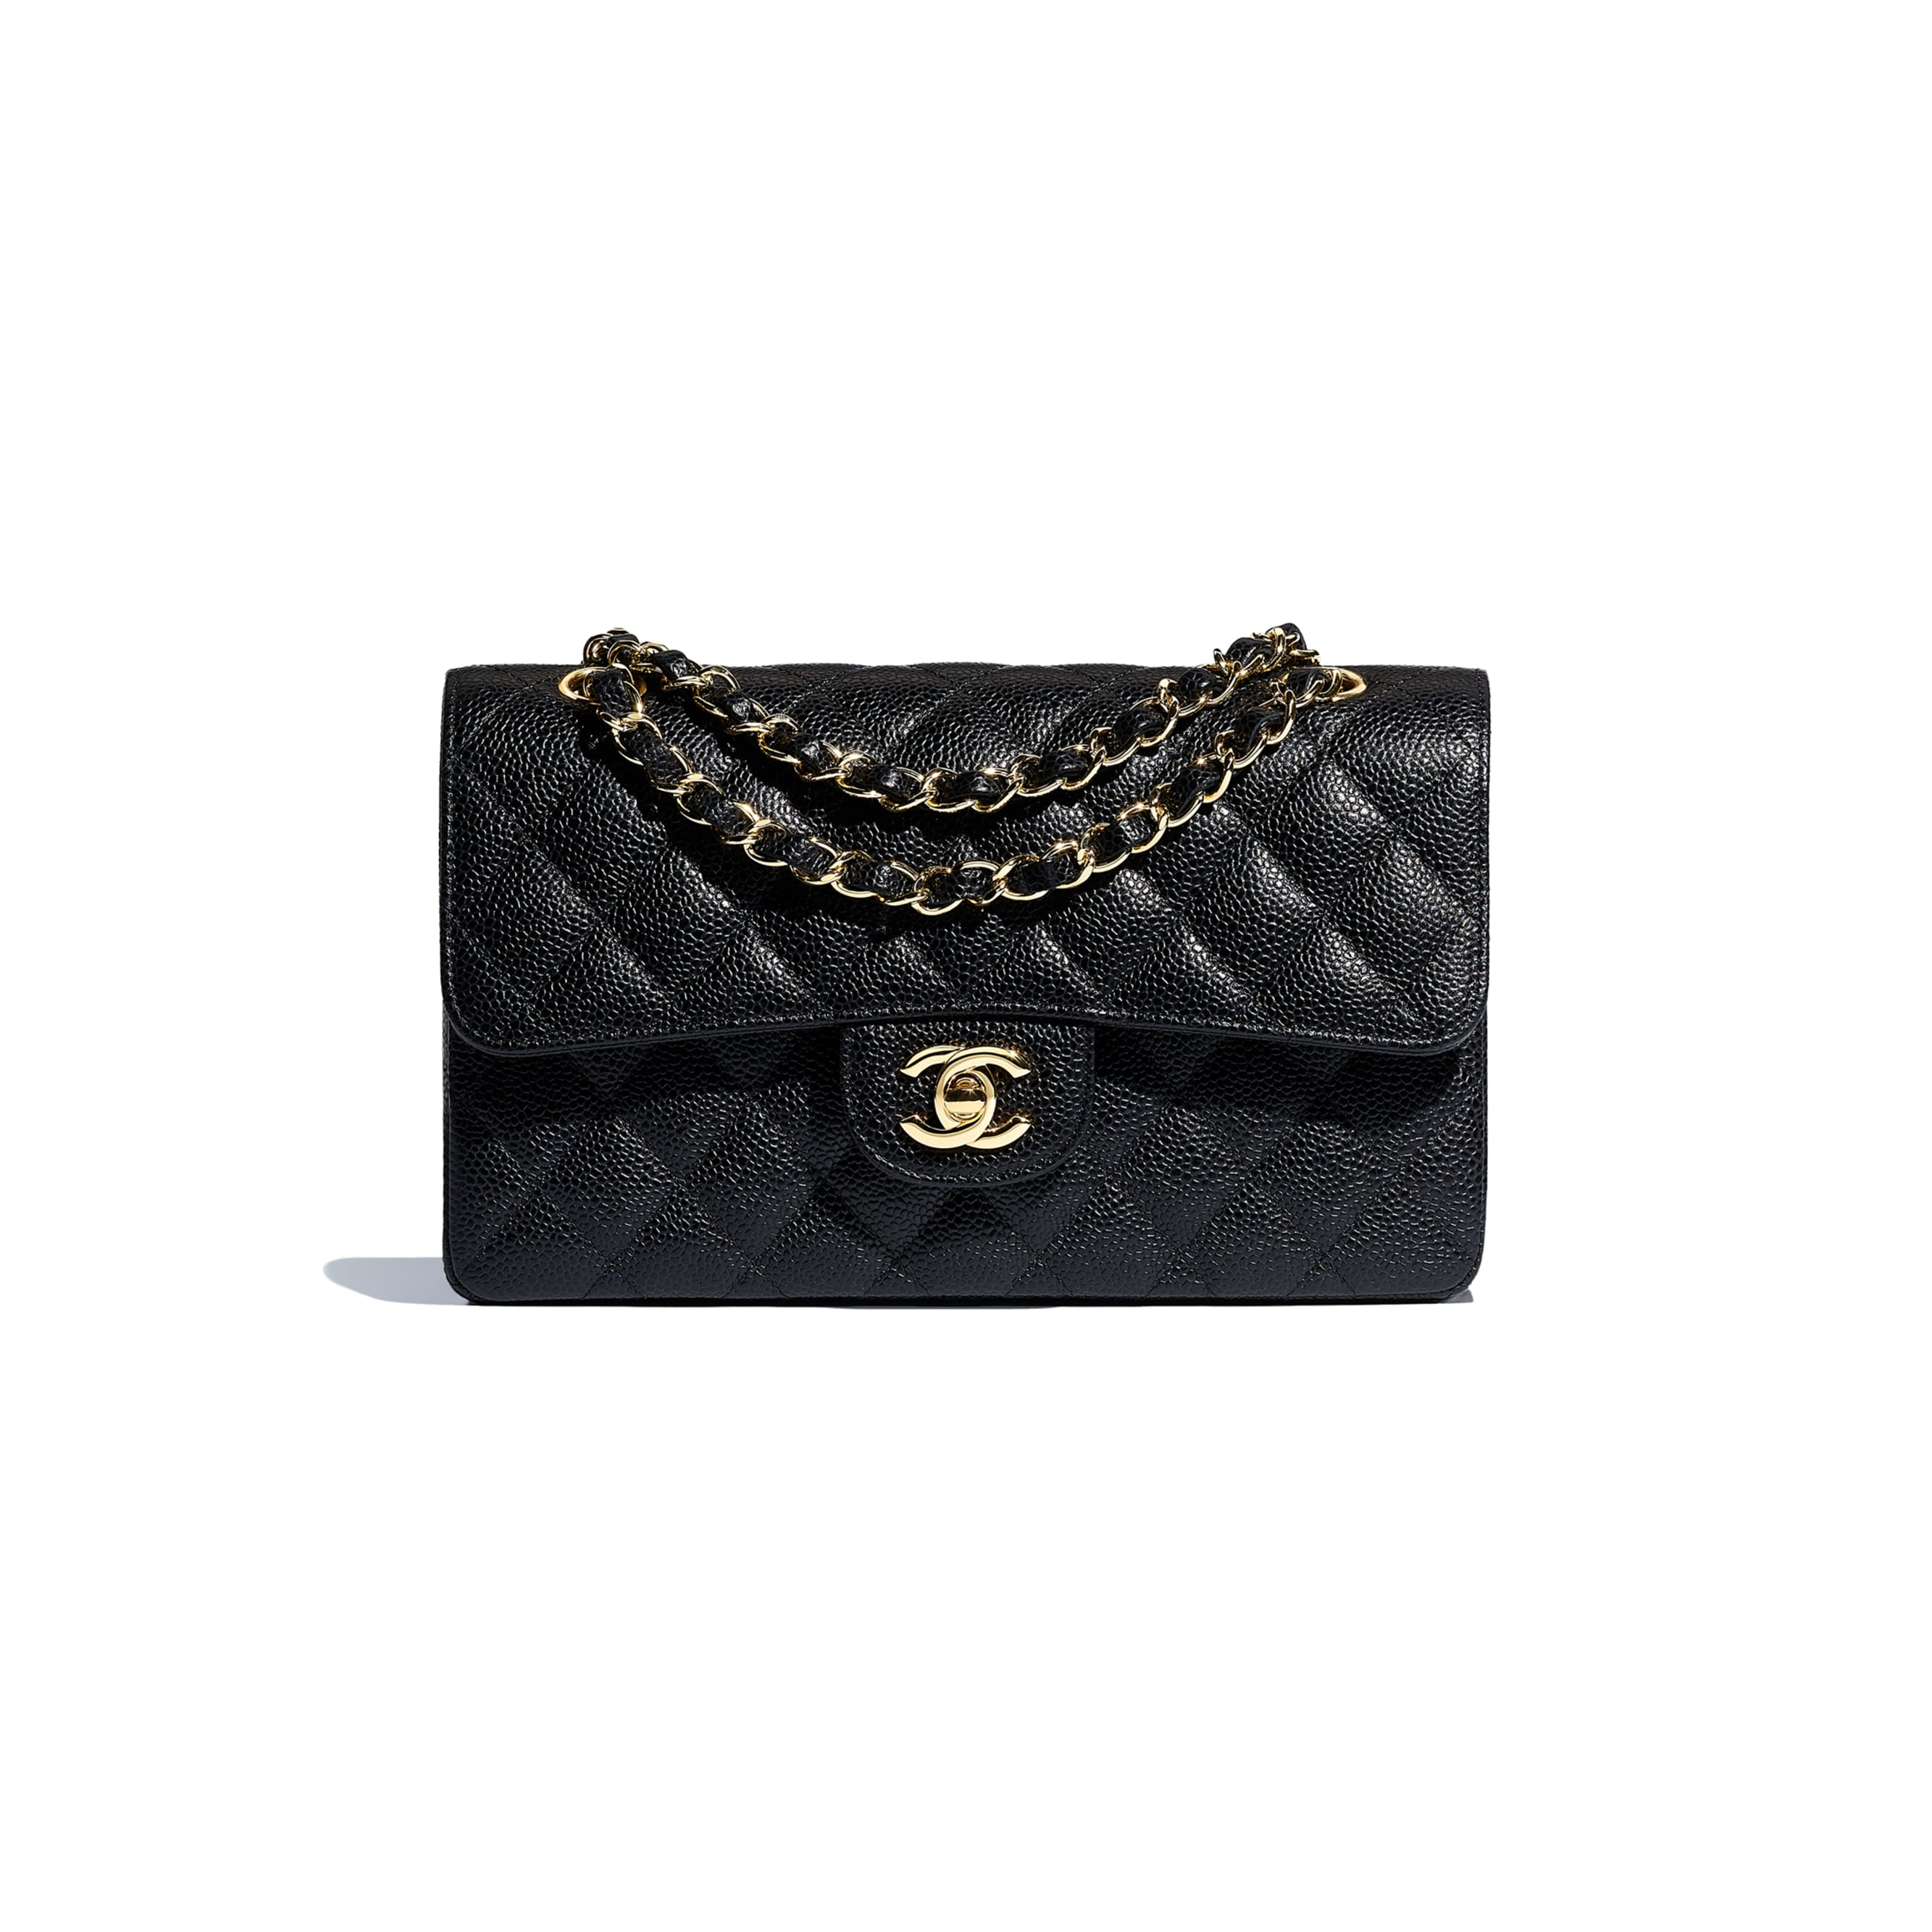 Classic Handbag - Black - Grained Calfskin & Gold-Tone Metal - CHANEL - Default view - see standard sized version